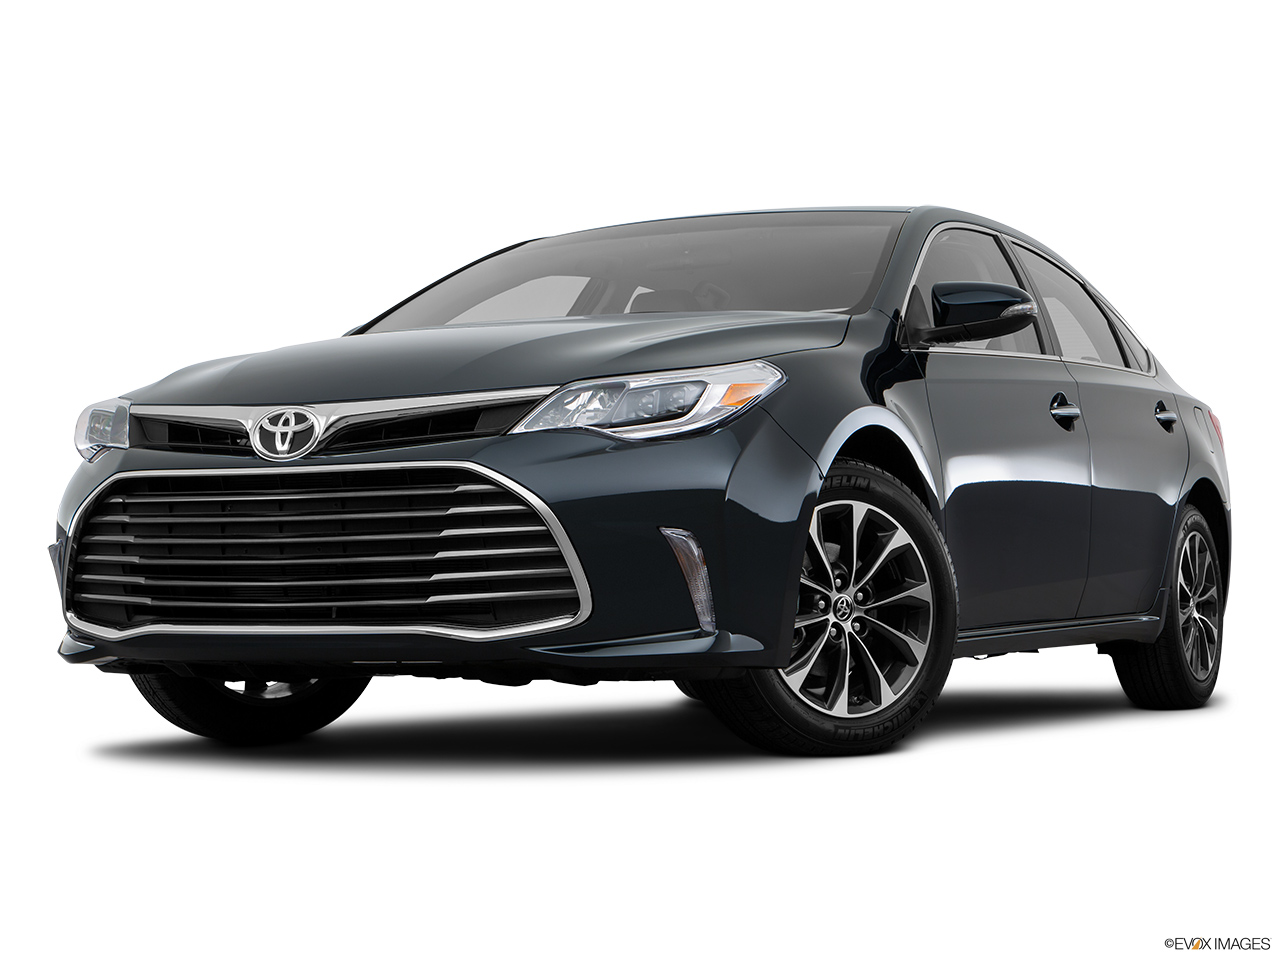 Toyota avalon 2016 saudi arabia front angle view low wide perspective